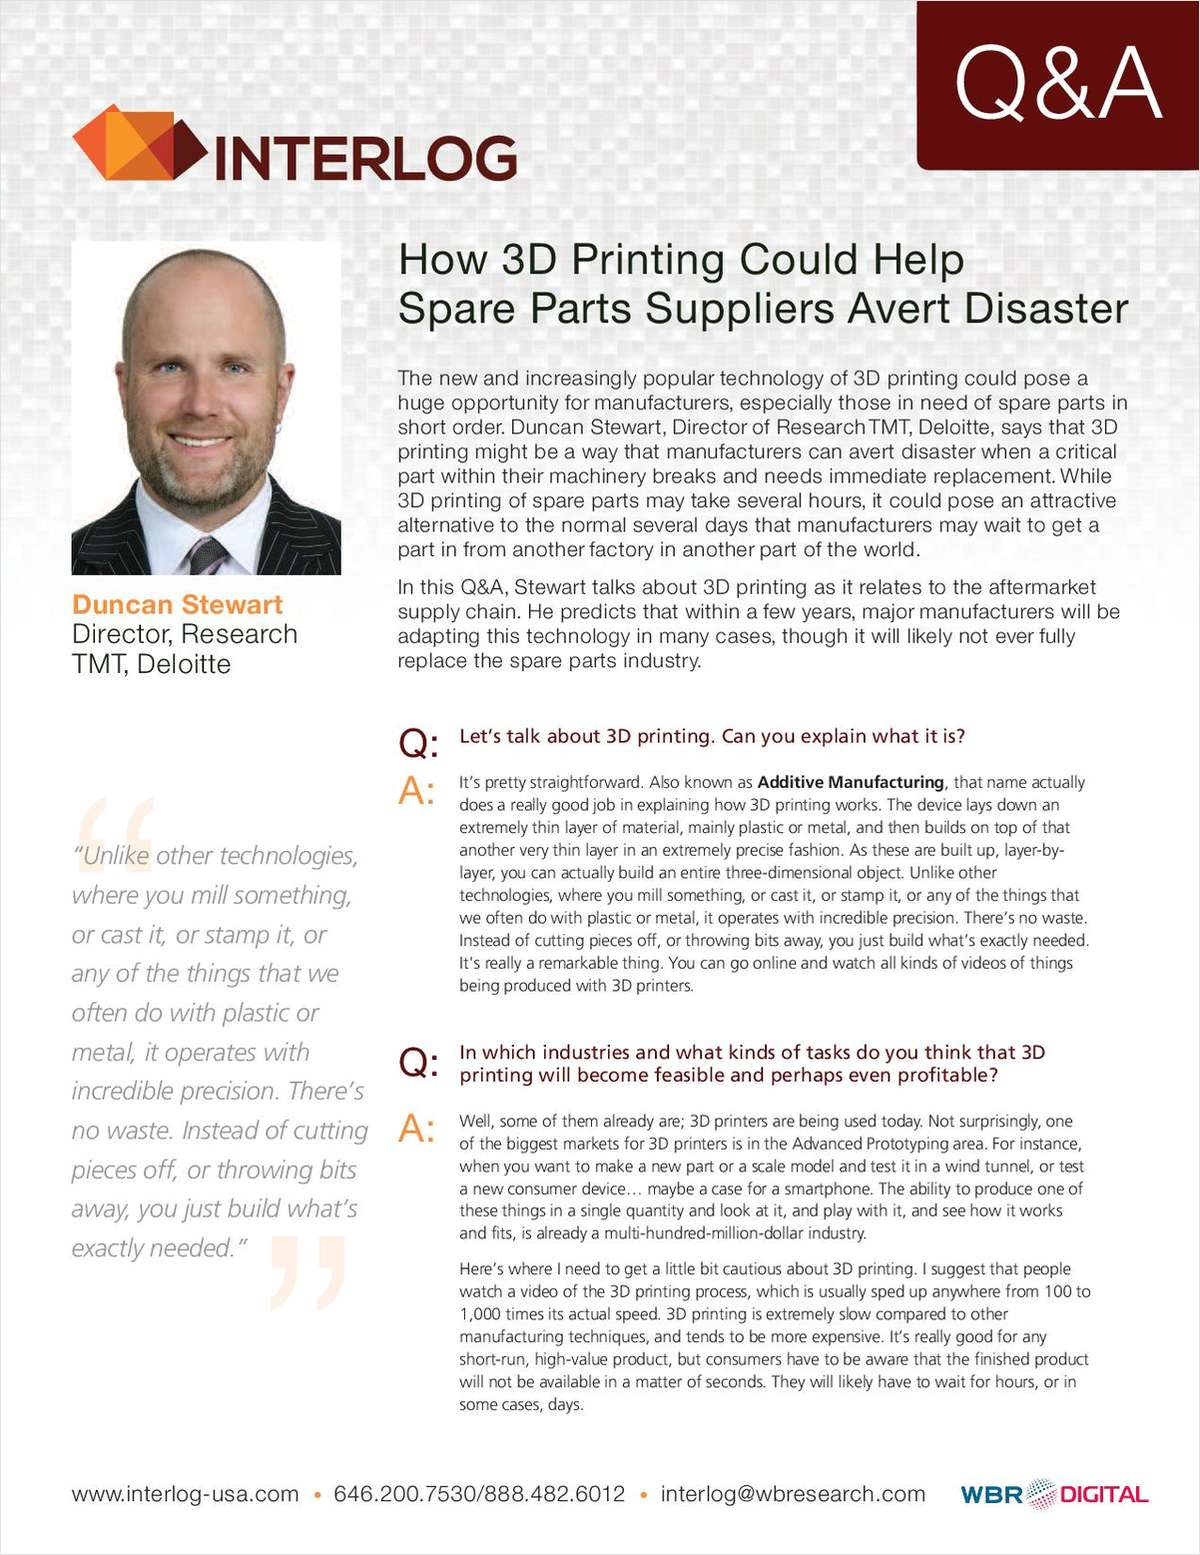 How 3D Printing Could Help Spare Parts Suppliers Avert Disaster